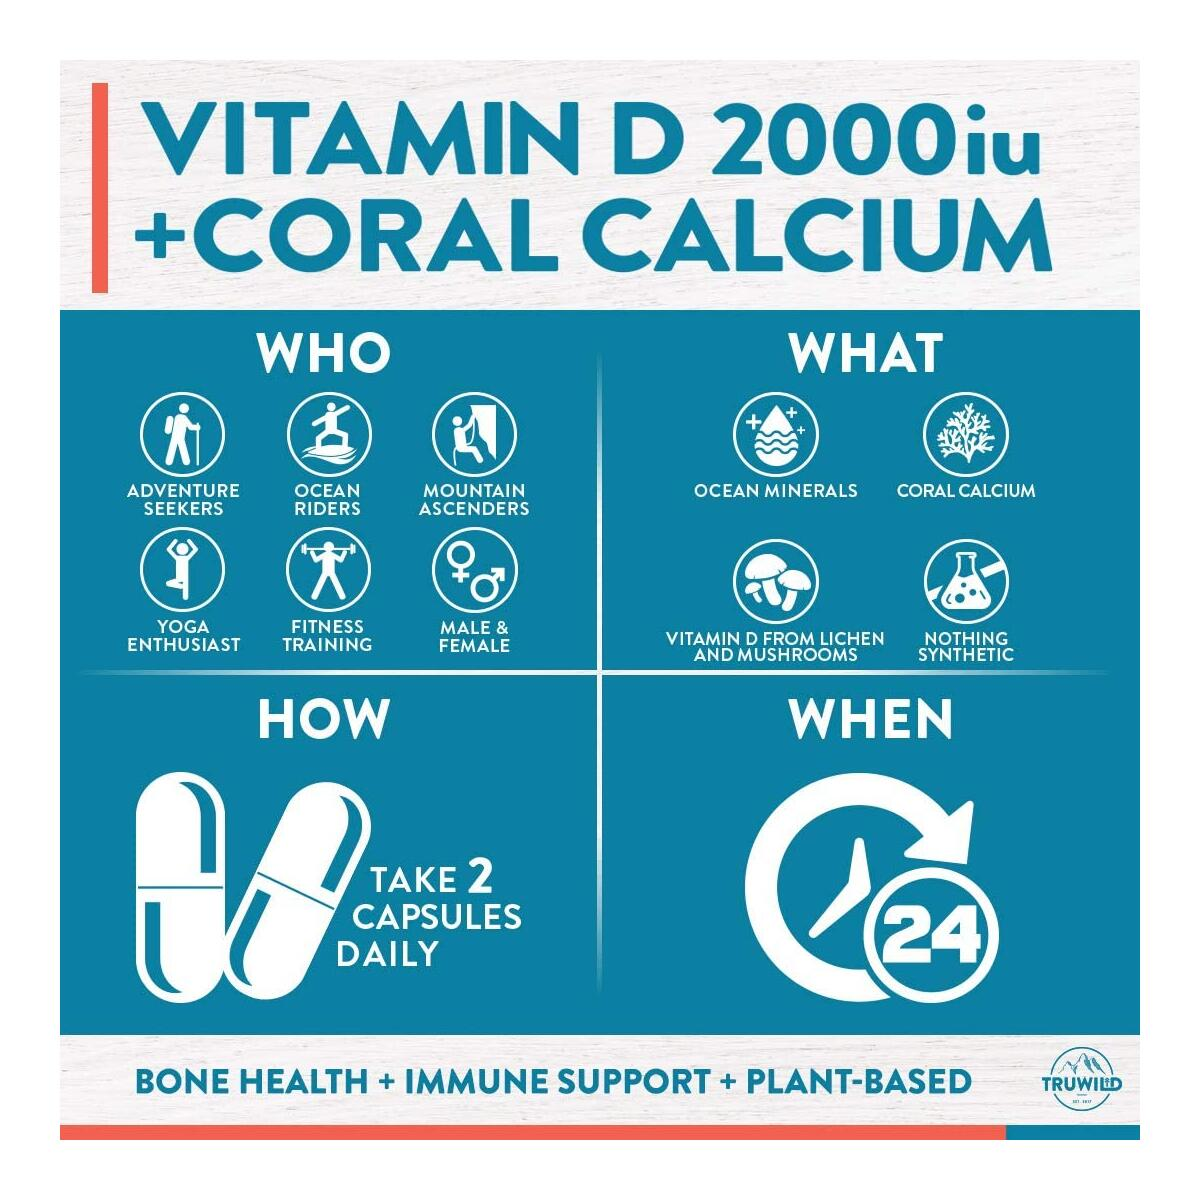 VEGAN VITAMIN D3 2000iu for Immune Support, Healthy Muscle Function, Bone Health, and Calcium Absorption [60 Capsules]